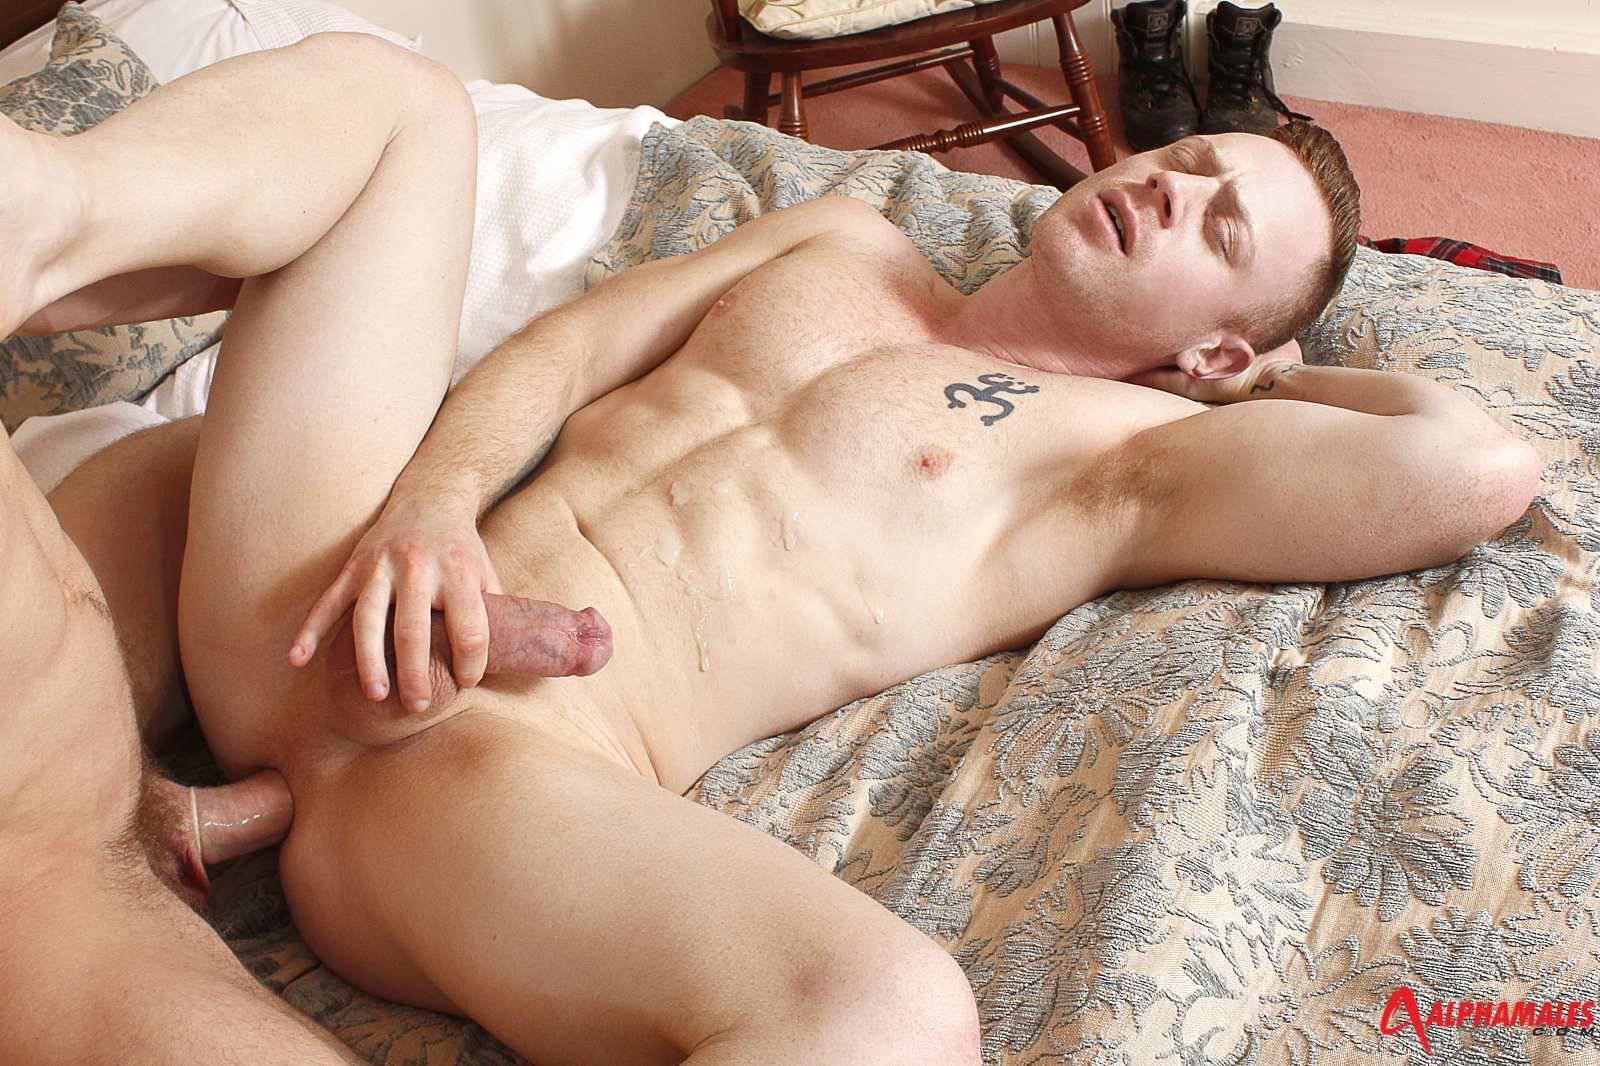 Alphamales-Kayden-Gray-and-Saxon-West-Big-Uncut-Cock-Redhead-Amateur-Gay-Porn-09 Kayden Gray Fucking Beefy Redhead Saxon West With His Big Uncut Cock